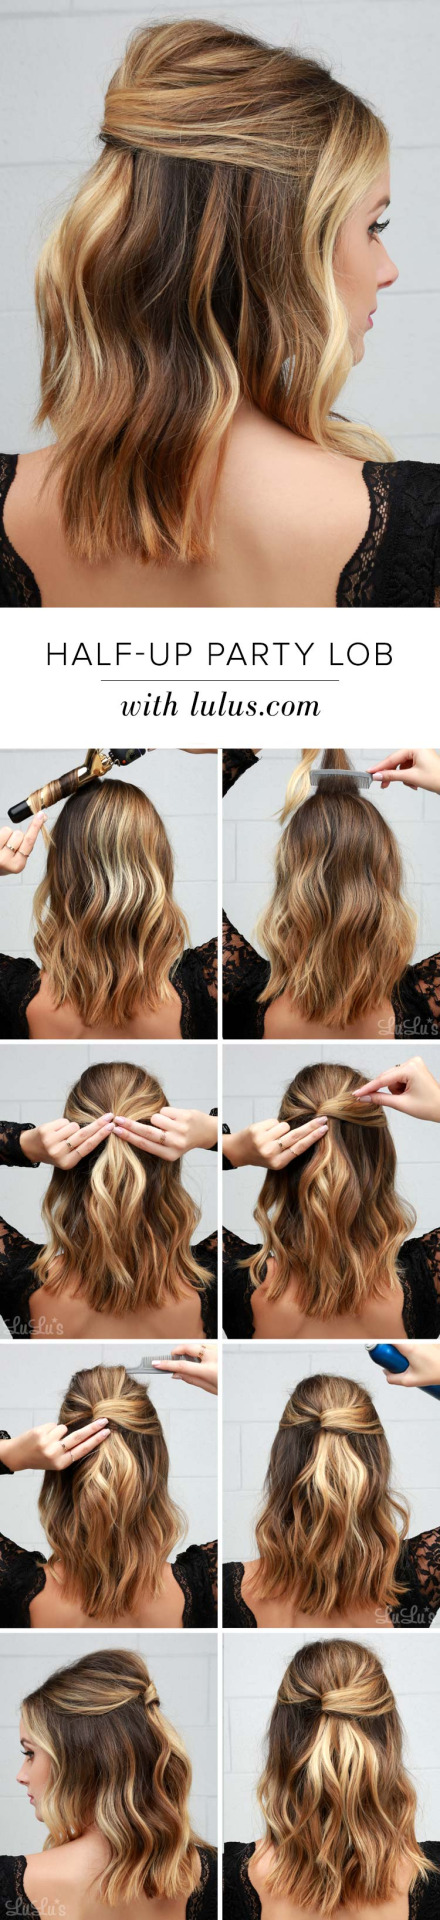 Lulus howto halfup party lob hair do or donut pinterest